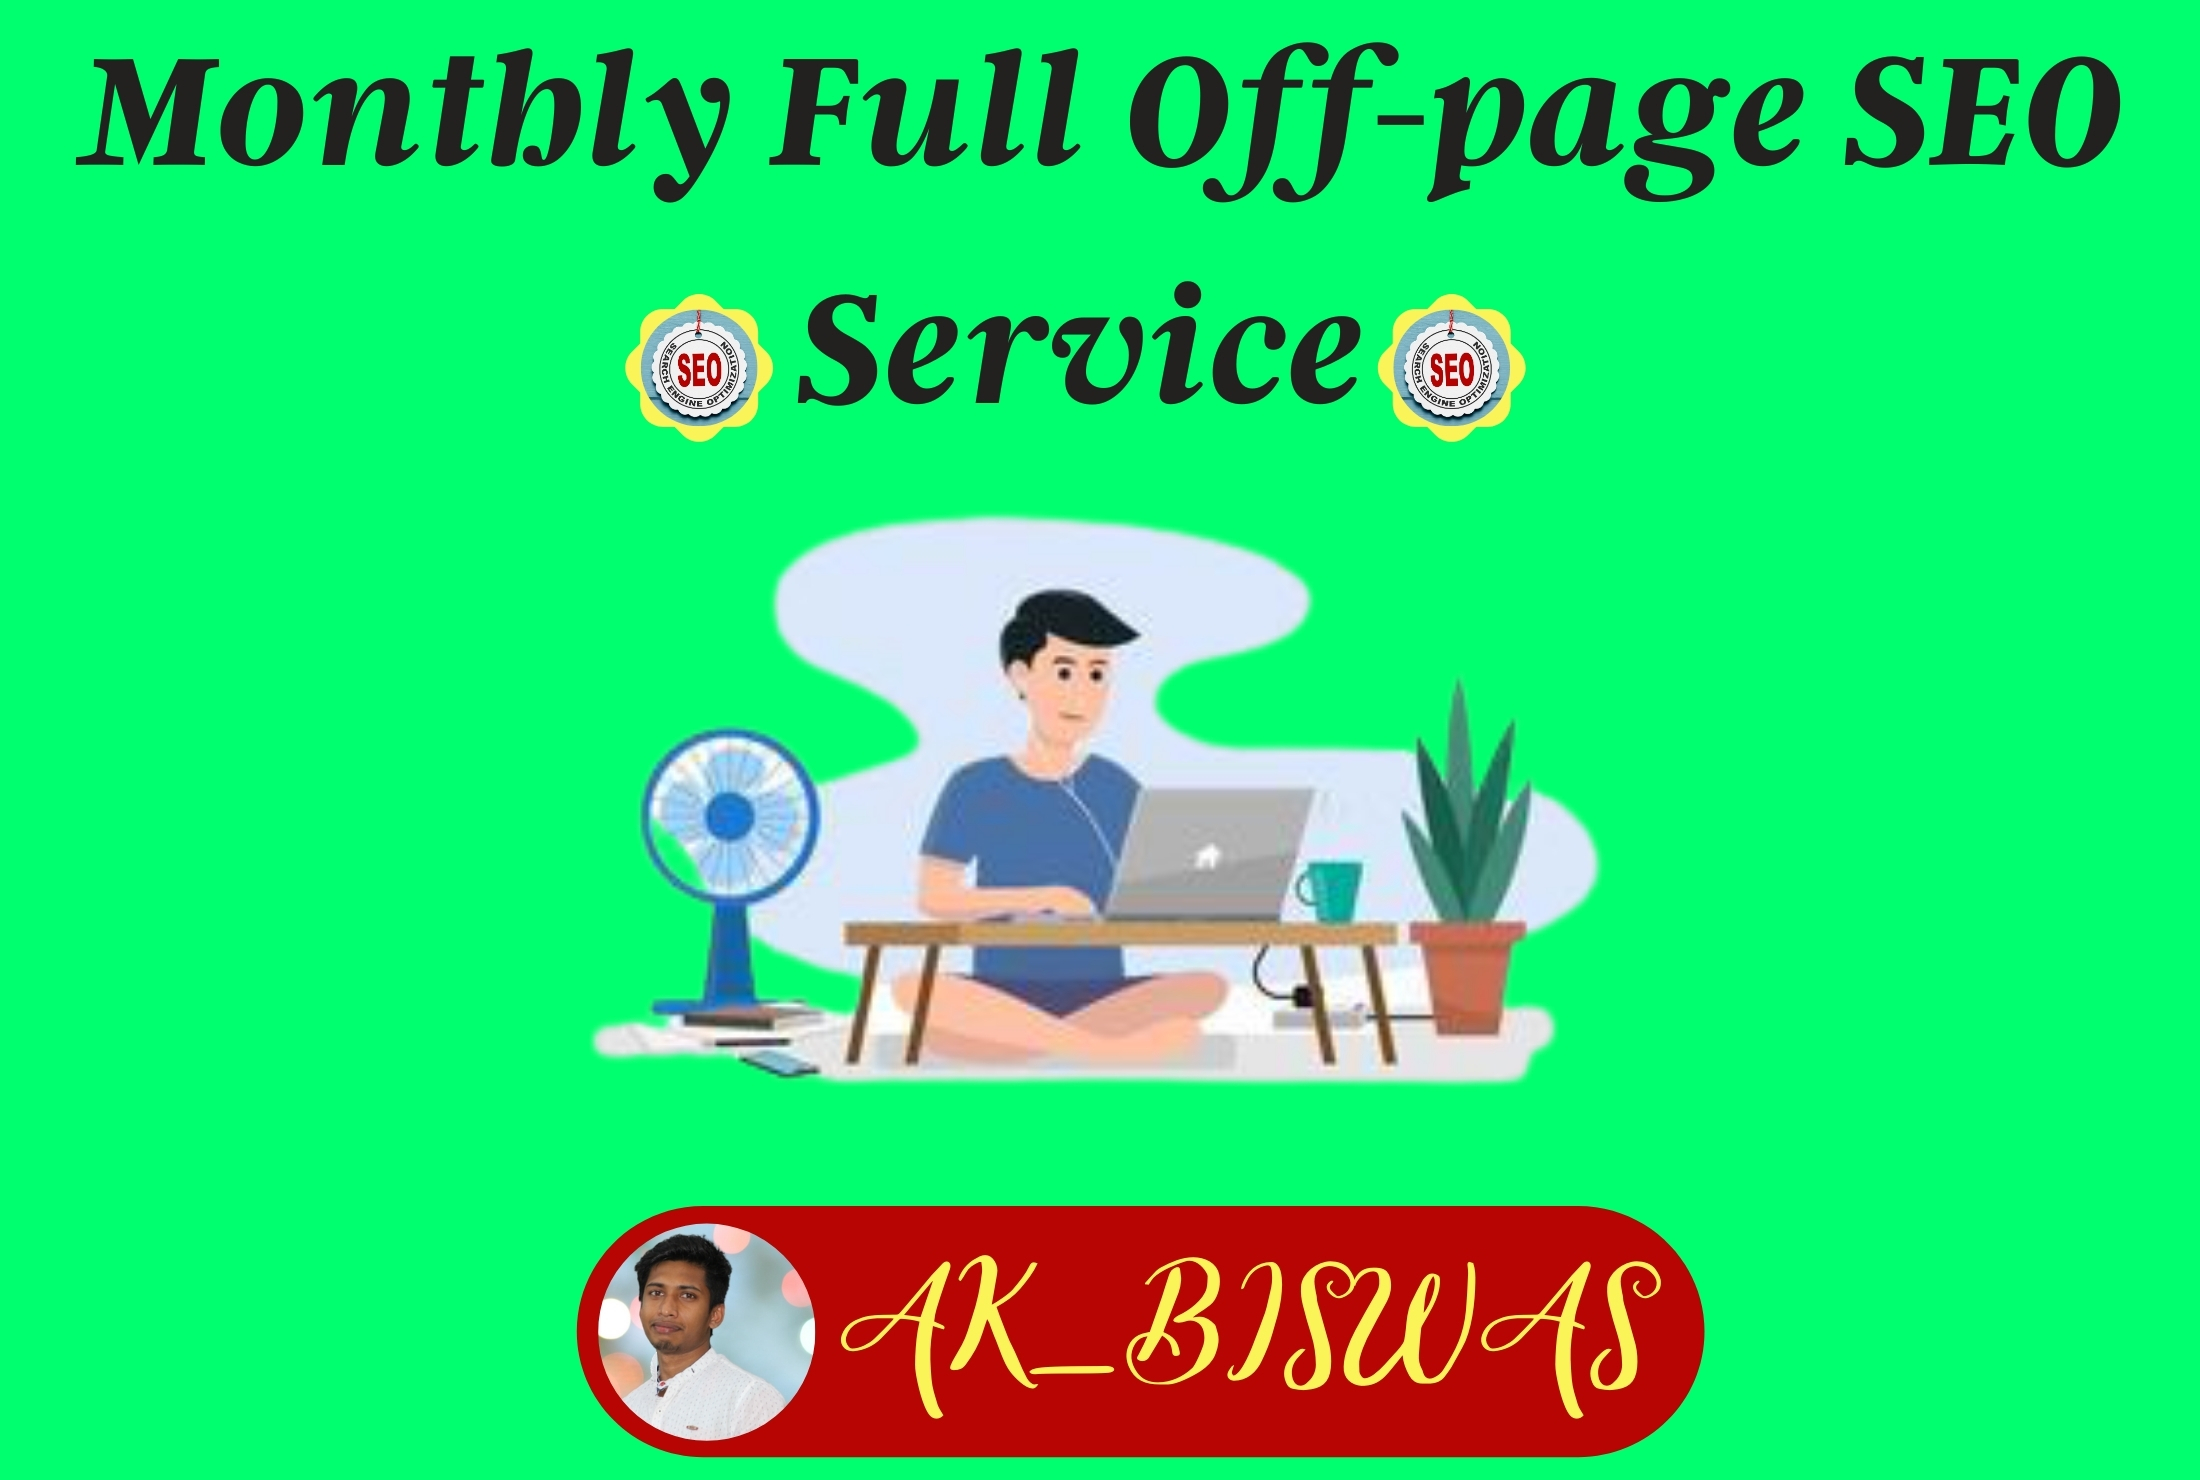 All-In-One monthly full off page SEO service with High Quality 750 backlink